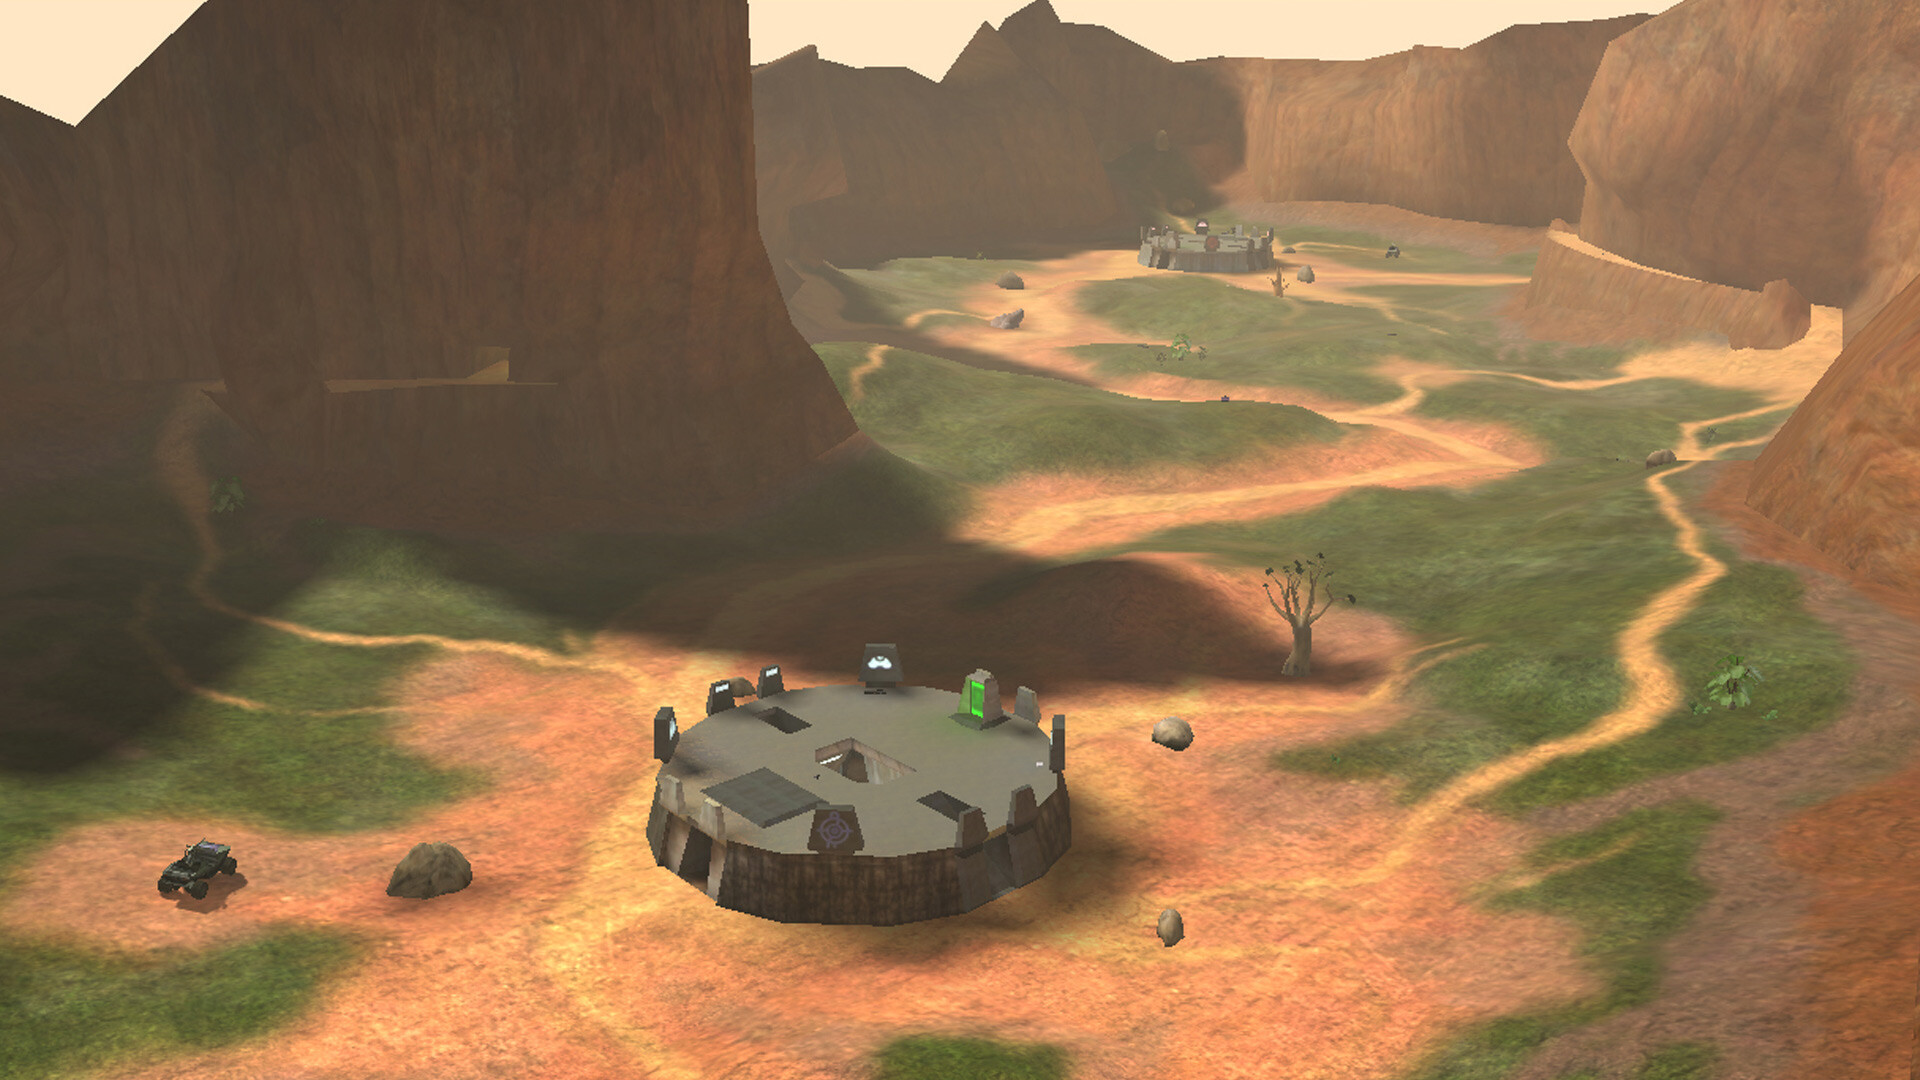 Halo 1 Reference Image (Blue Base)